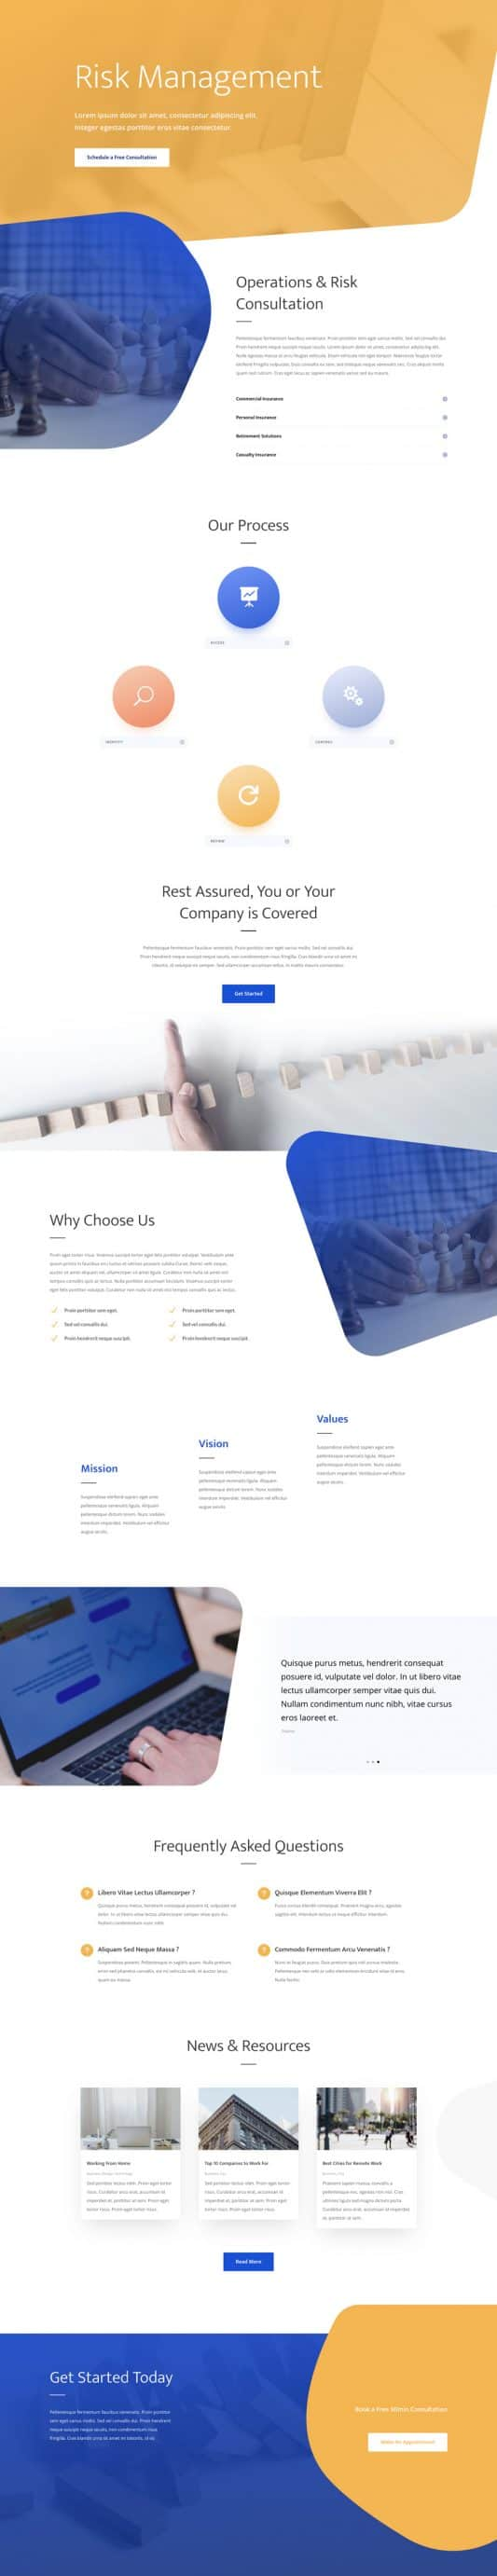 Risk Management Web Design 5